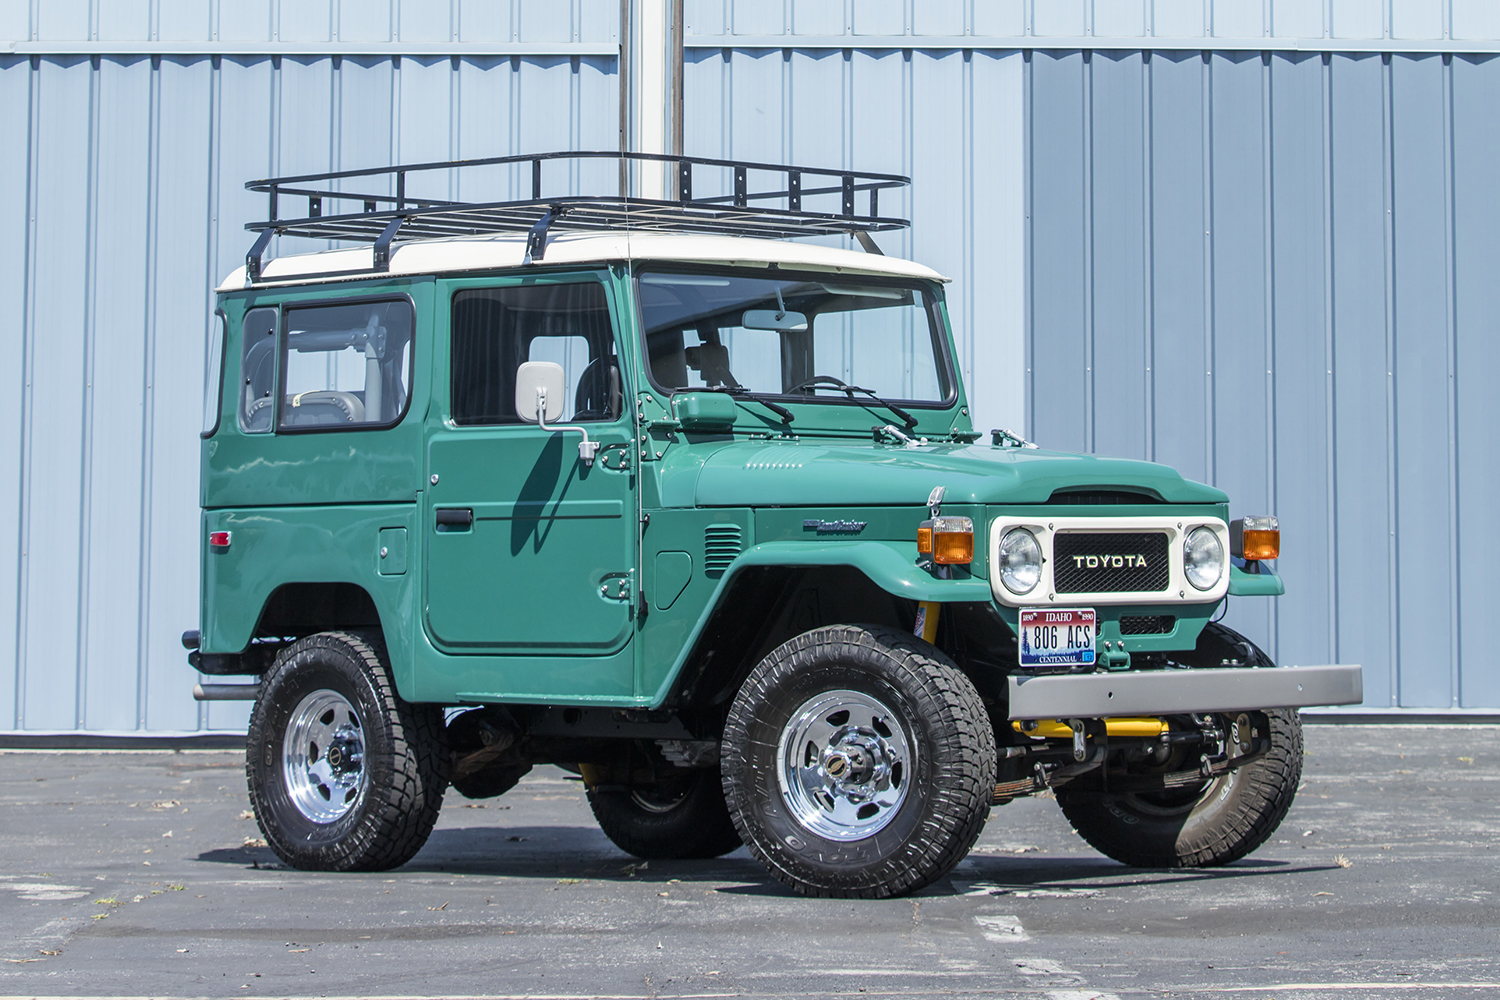 The 1980 Toyota FJ40 Land Cruiser owned by Tom Hanks. It will sell this August at the Bonhams Quail Lodge Auction at Monterey Car Week.